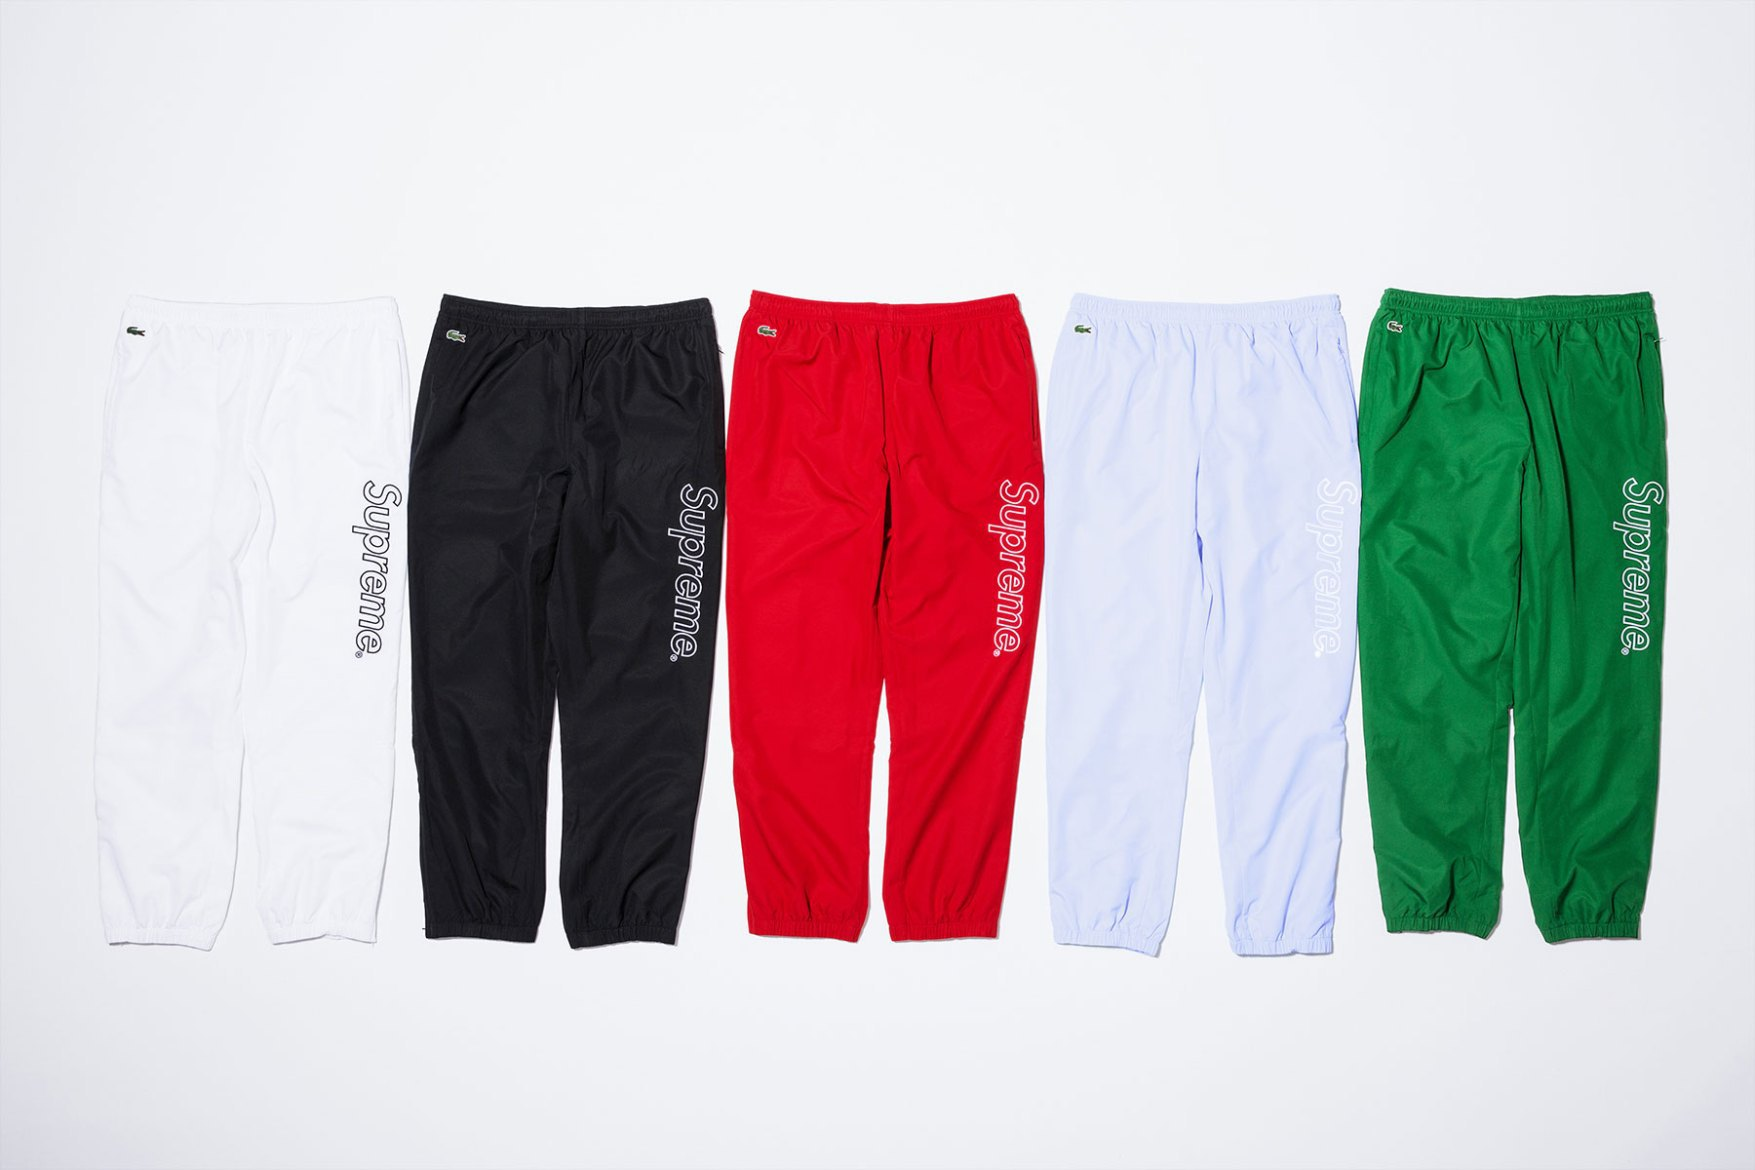 lacoste-supreme-pants-group-2017-spring-summer-9